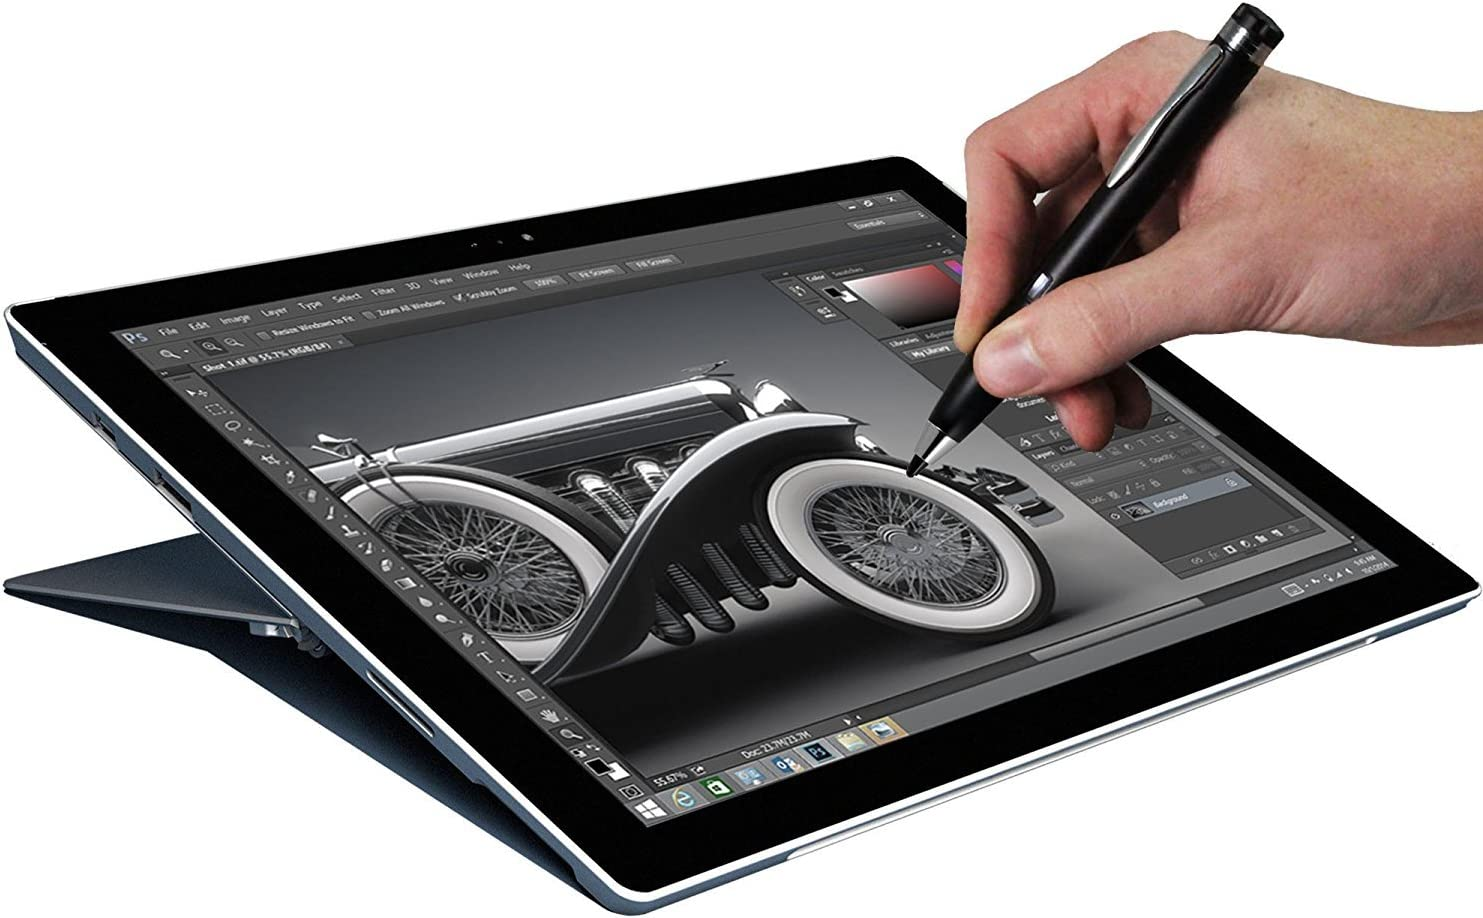 Navitech Broonel Silver Fine Point Digital Active Stylus Pen Compatible with The TOPELOTEK 7 Inch Tablet PC